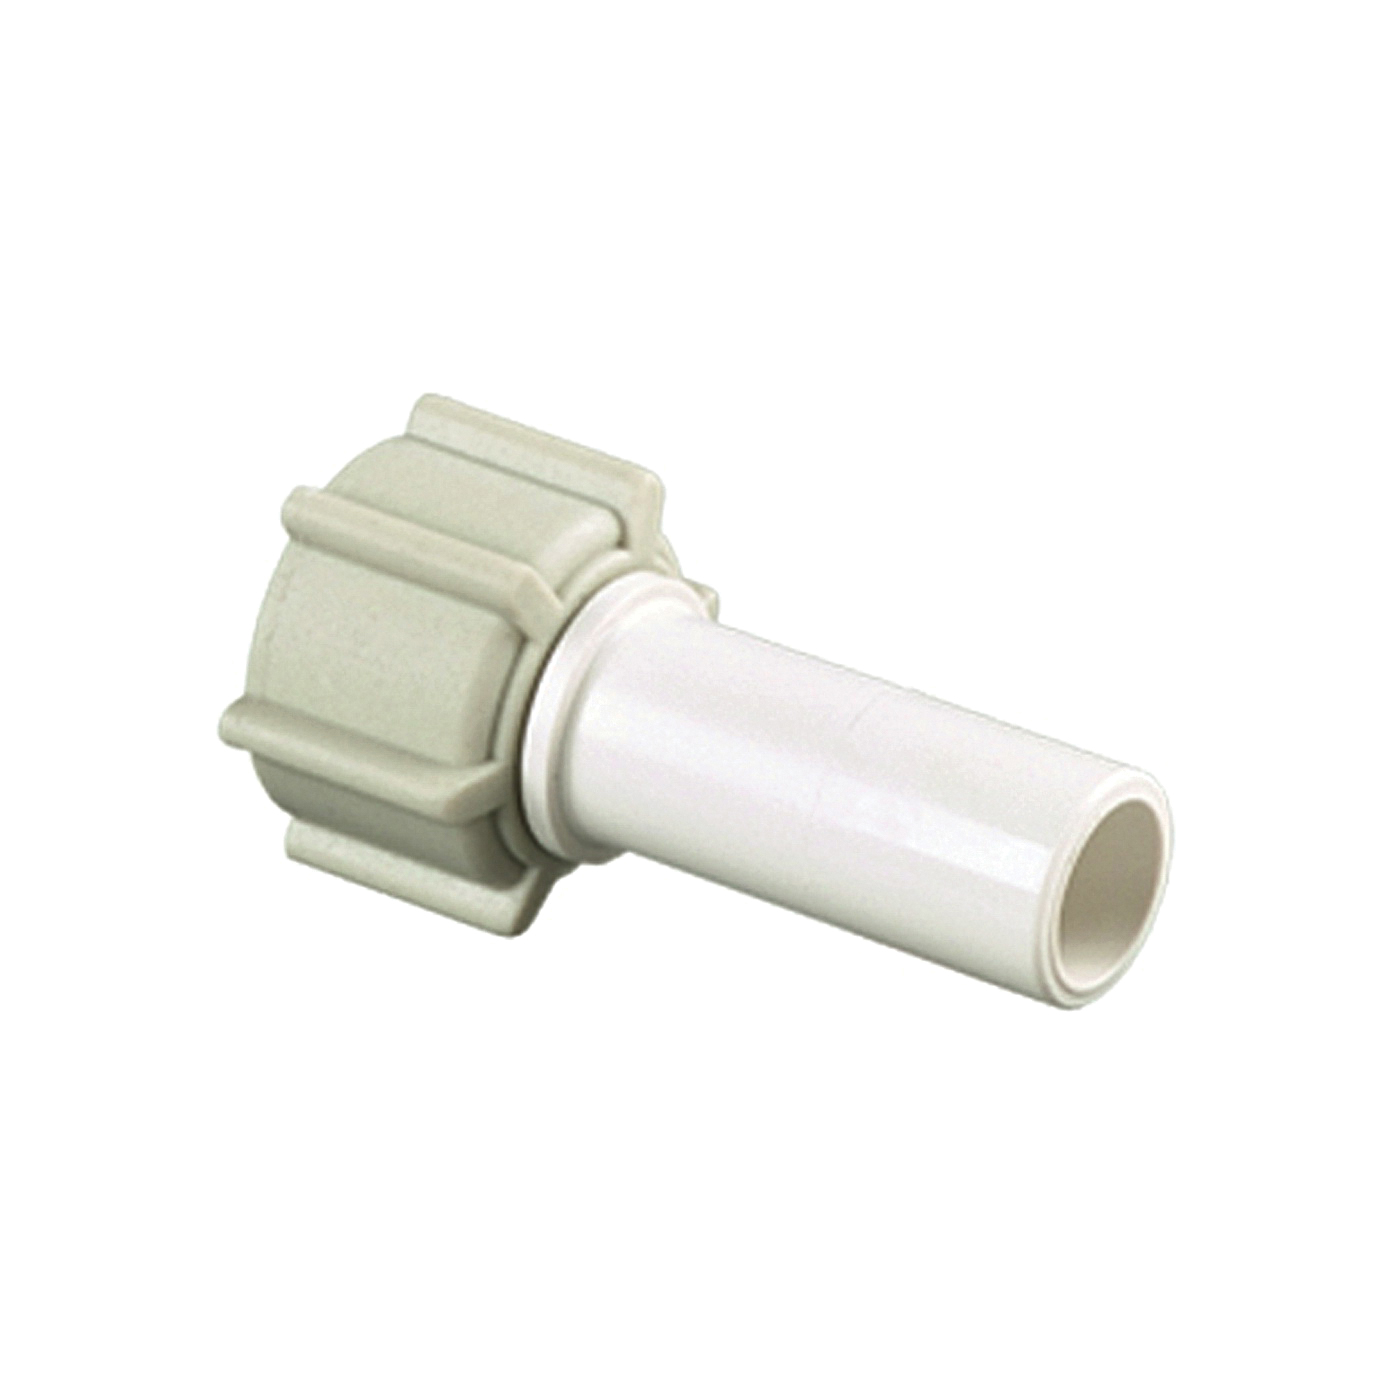 Picture of Watts 35 Series 3528-1008 Stem Connector, 1/2 in CTS, 1/2 in FPT, Off-White